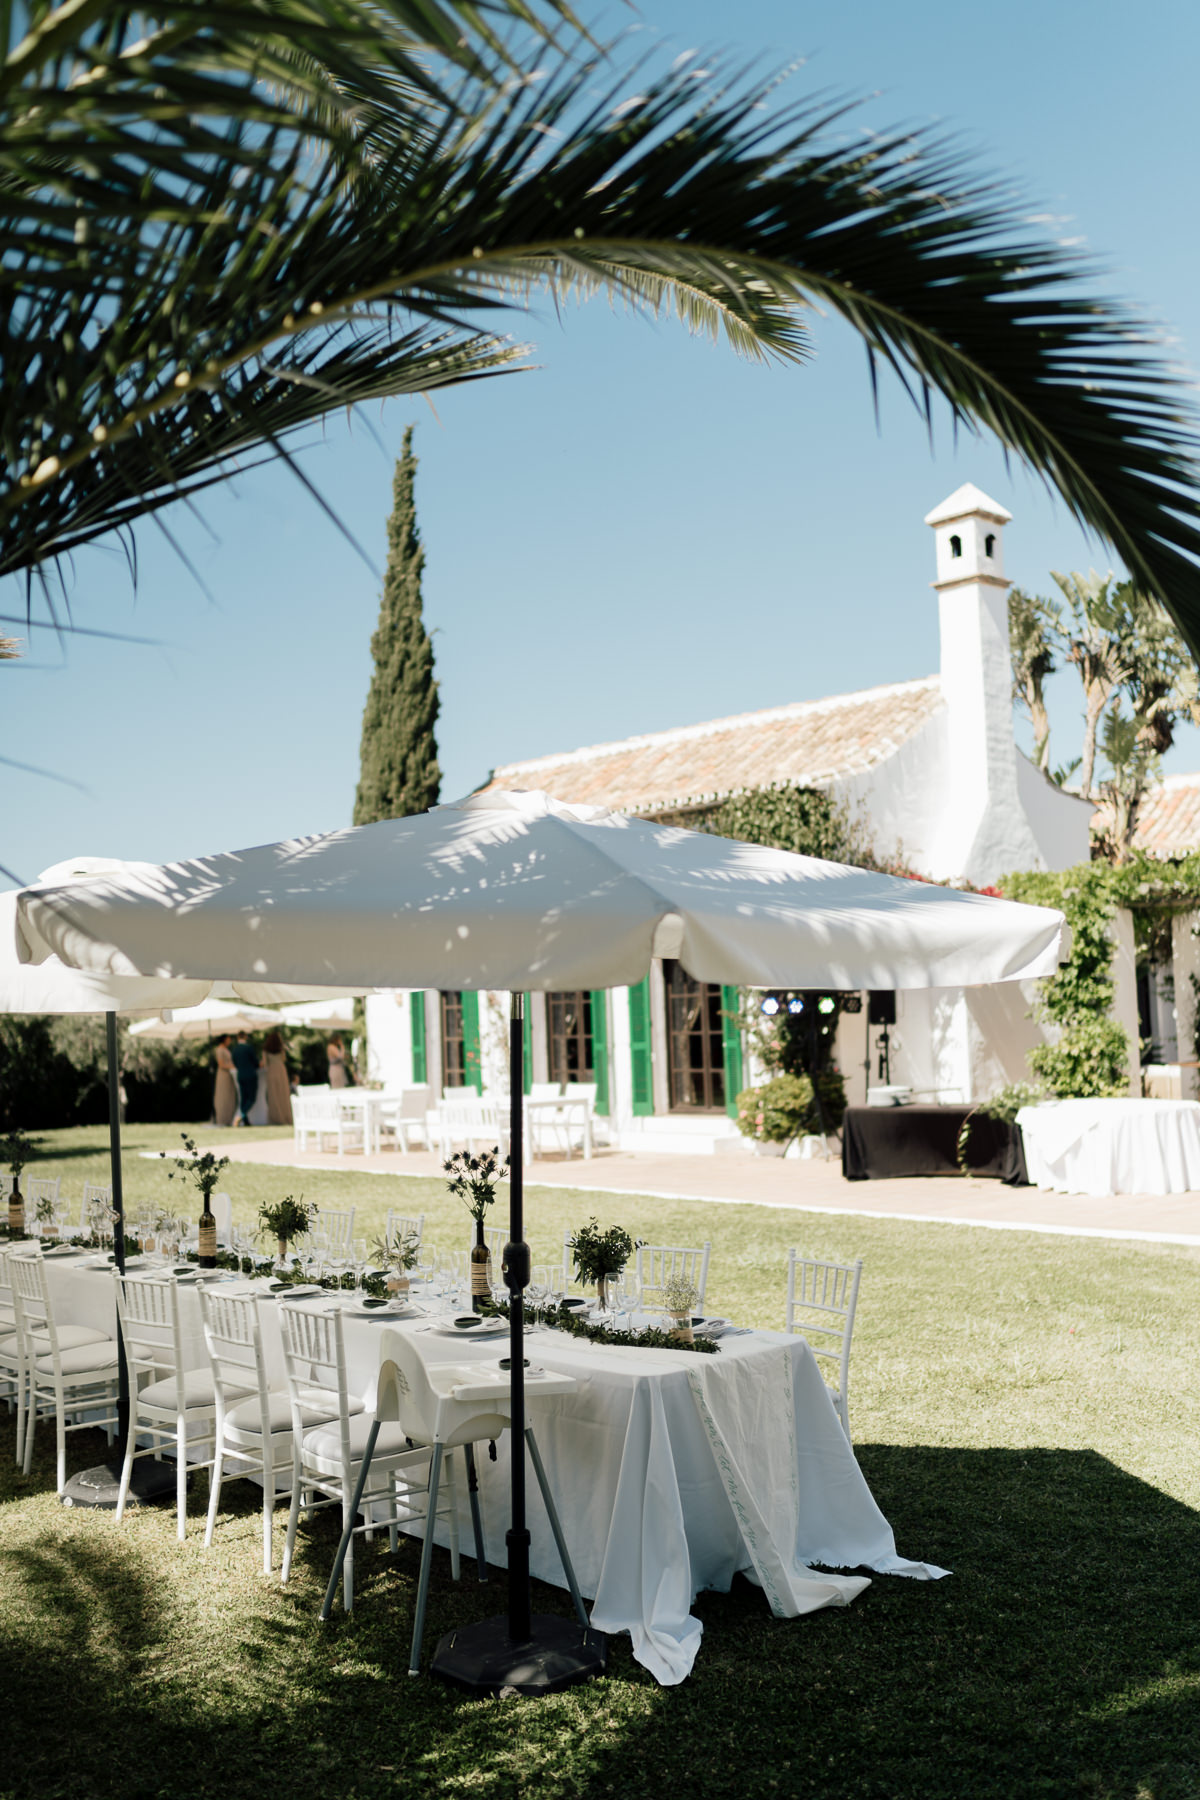 Wedding reception set up iat Hacienda San Jose, Mijas